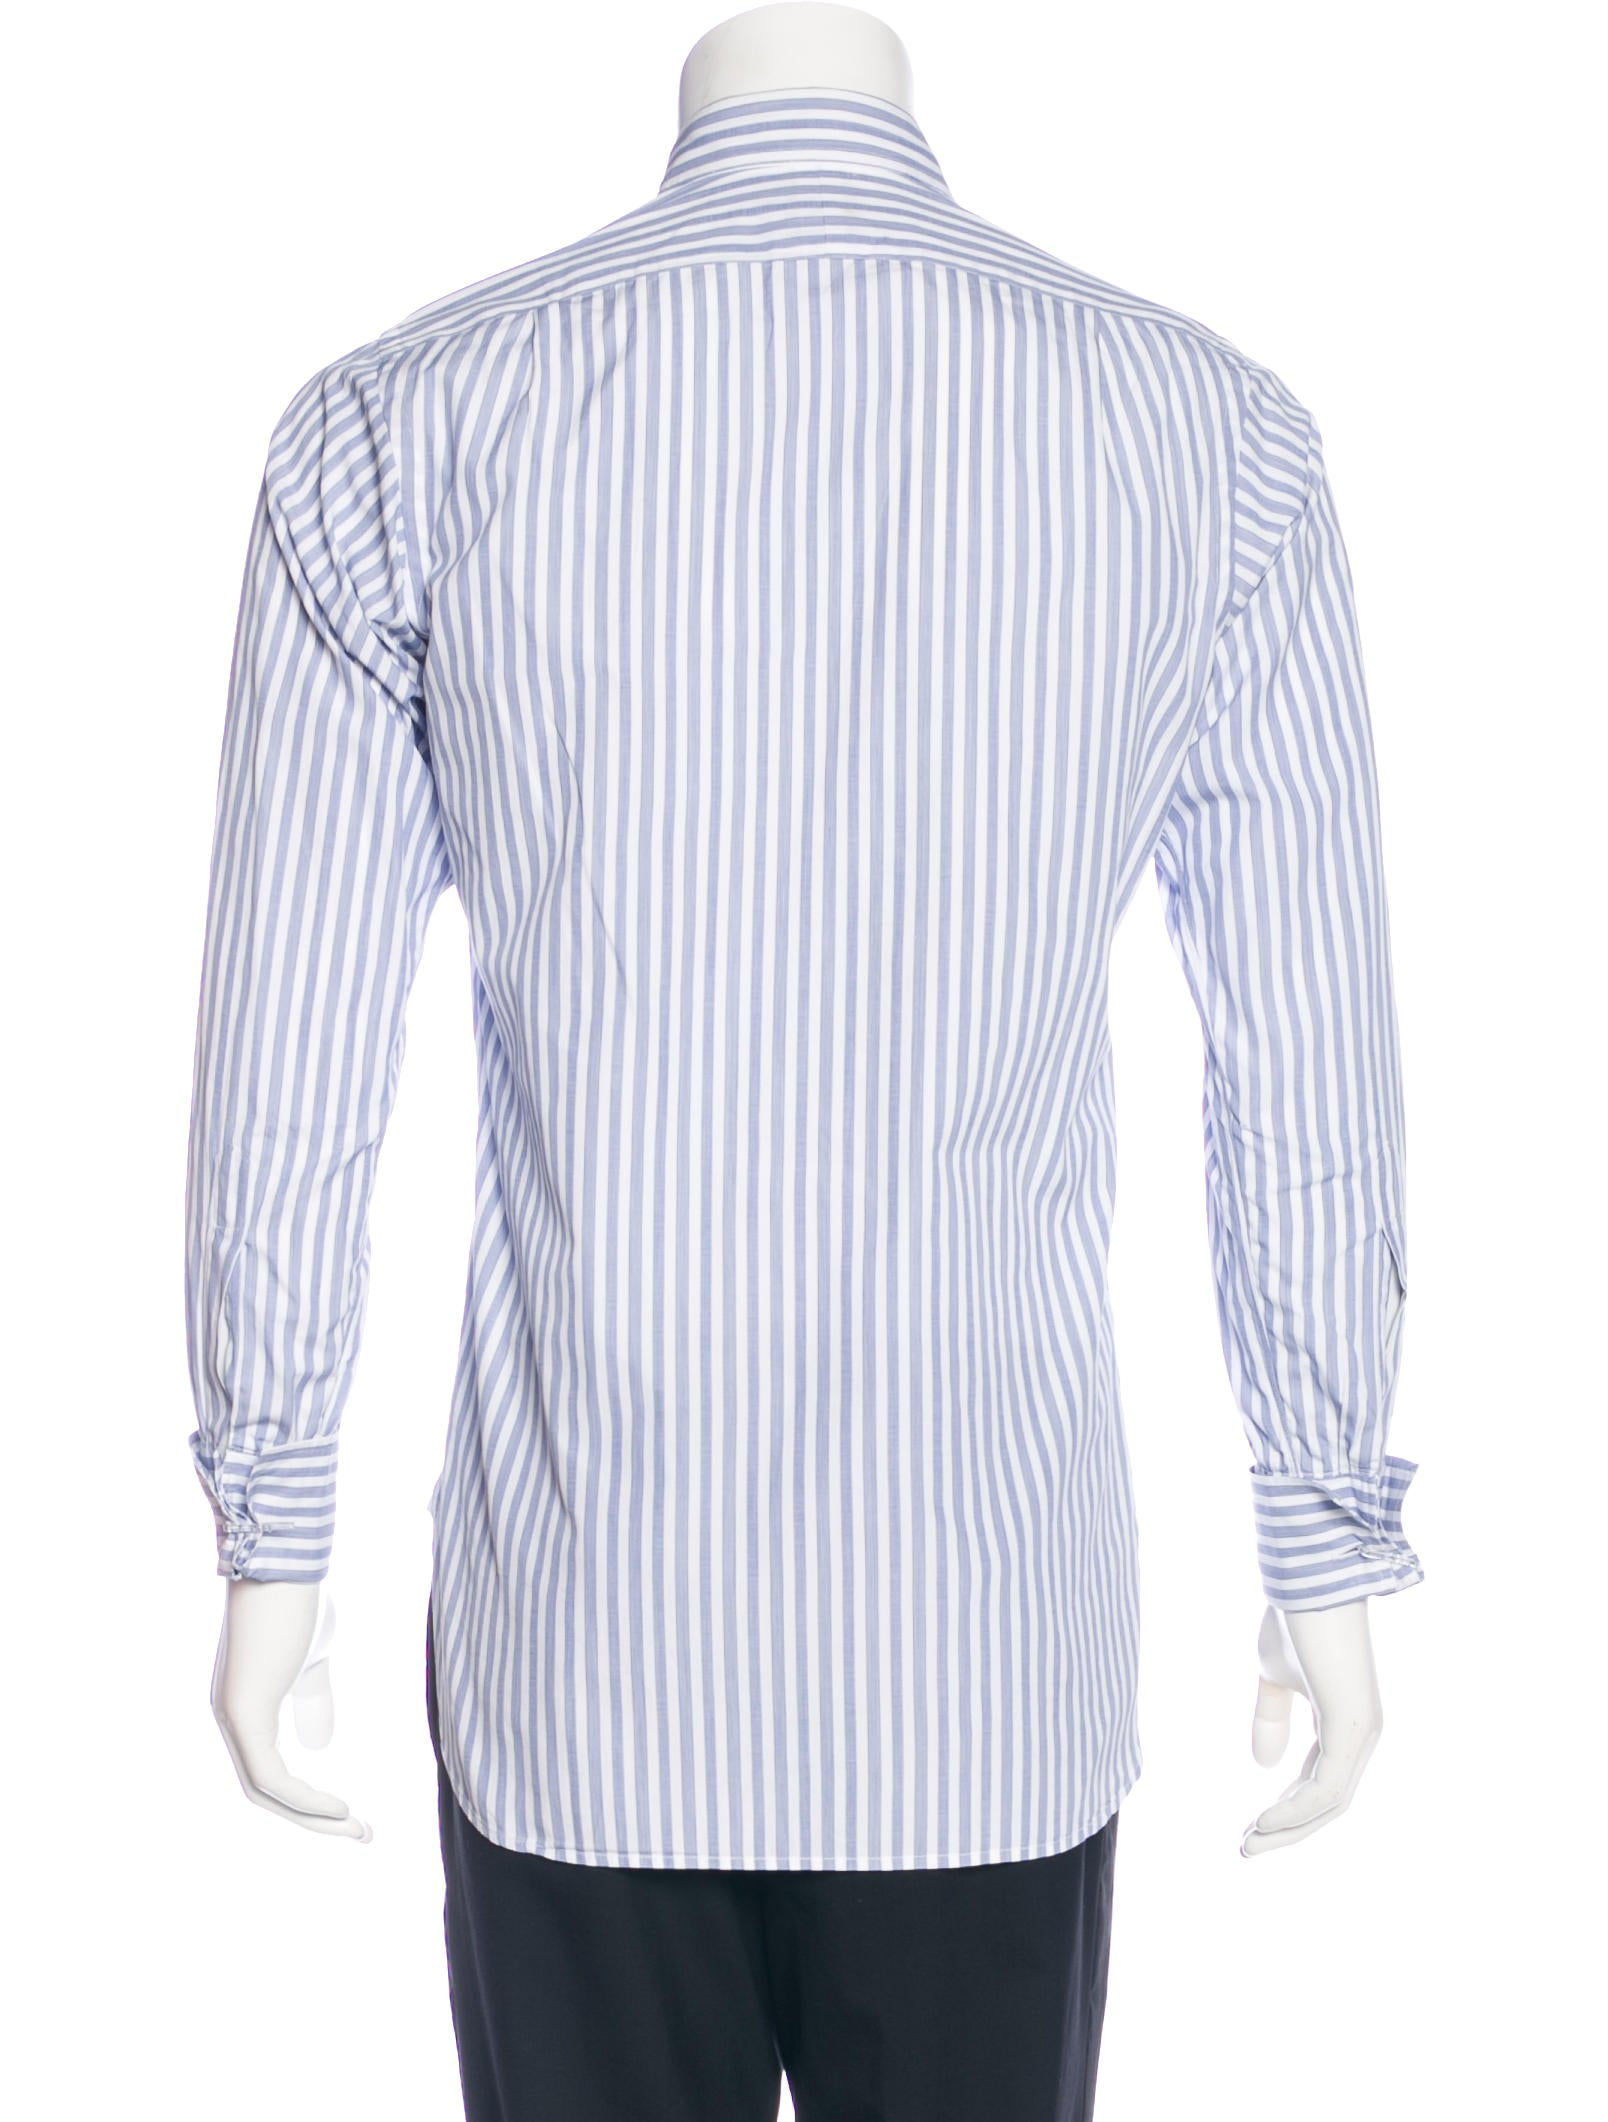 turnbull asser striped french cuff shirt clothing. Black Bedroom Furniture Sets. Home Design Ideas